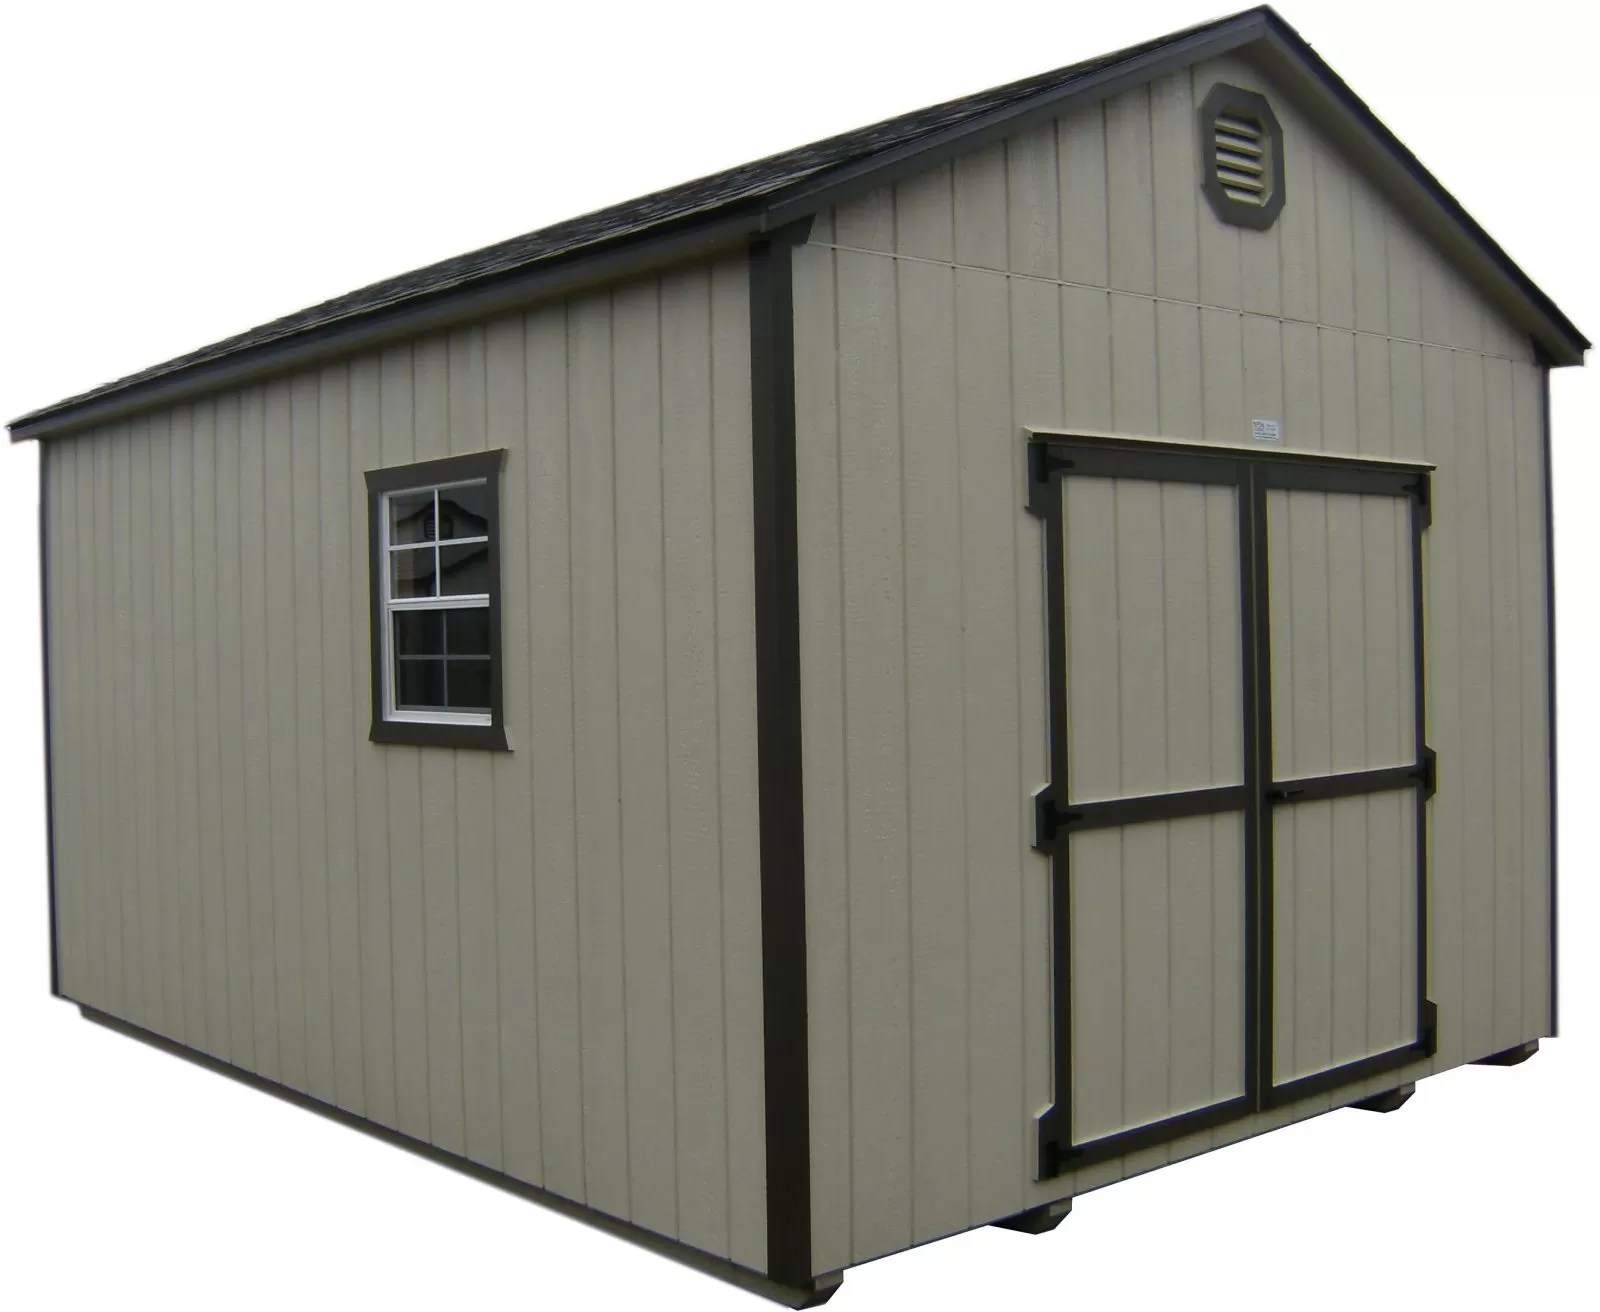 hight resolution of wood storage shed in mission or